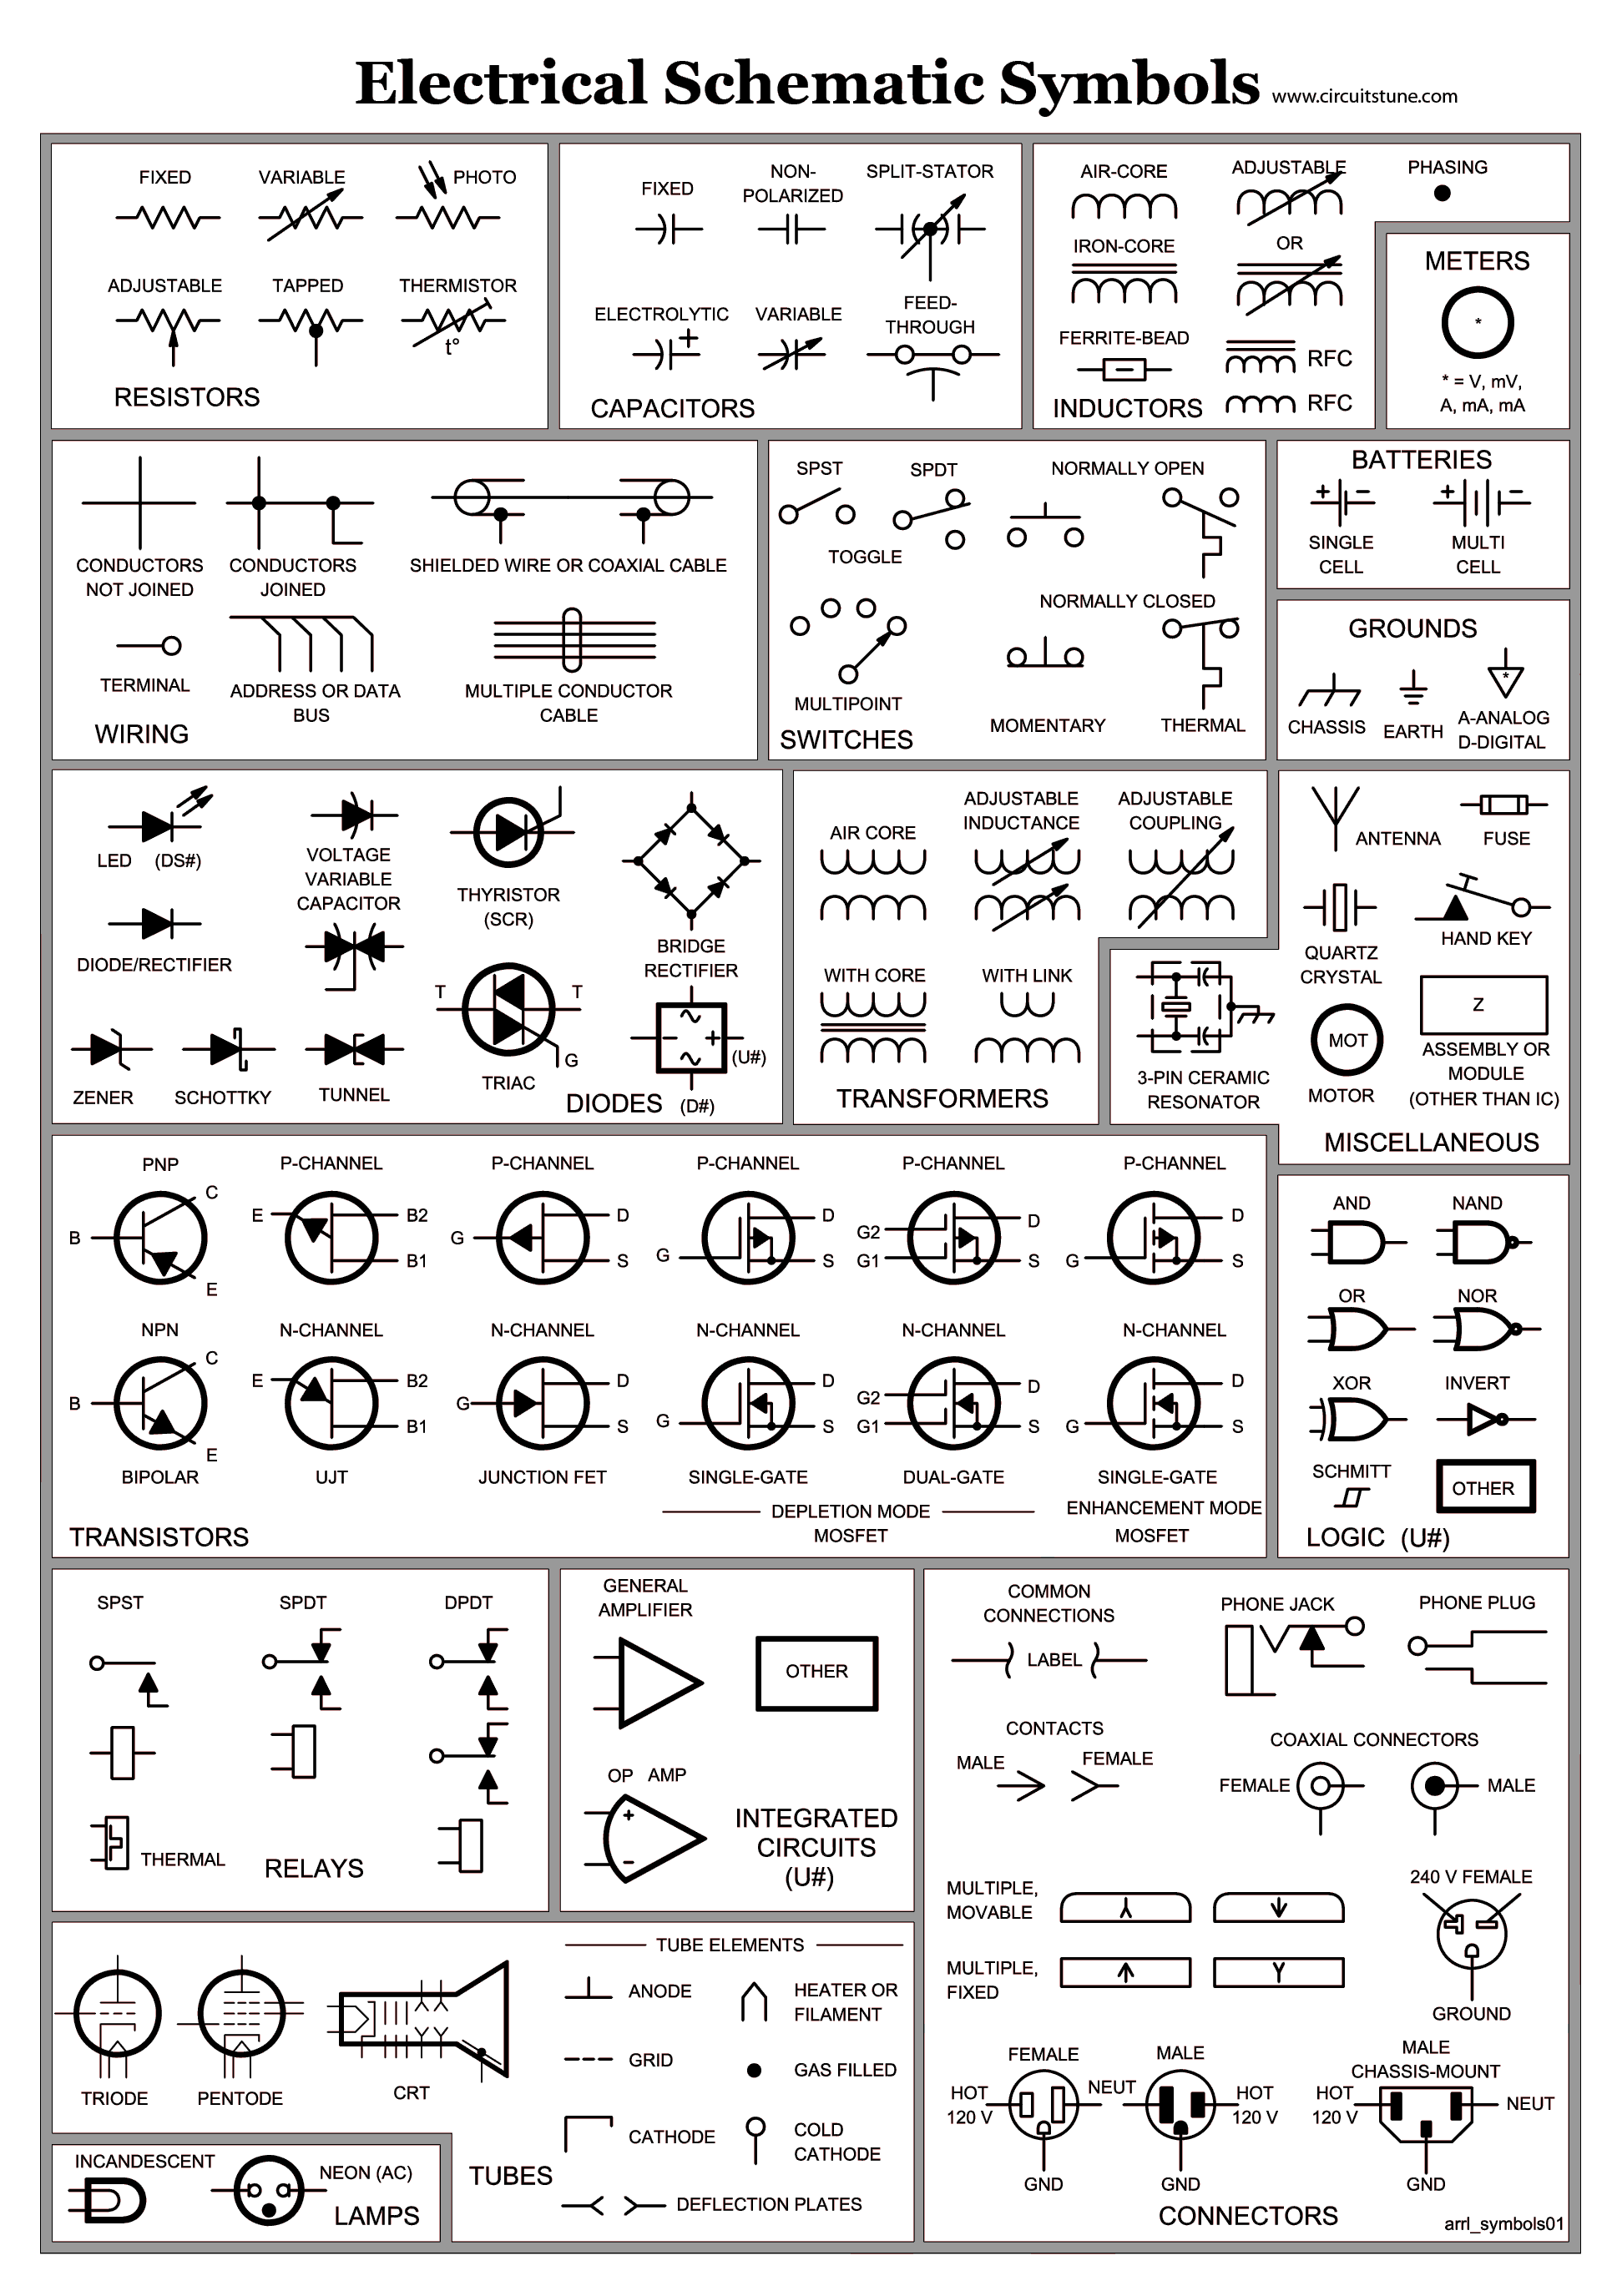 electrical schematic symbols wire diagram symbols automotive wiring rh pinterest co uk automotive wiring diagram symbols automotive wiring diagram symbols pdf